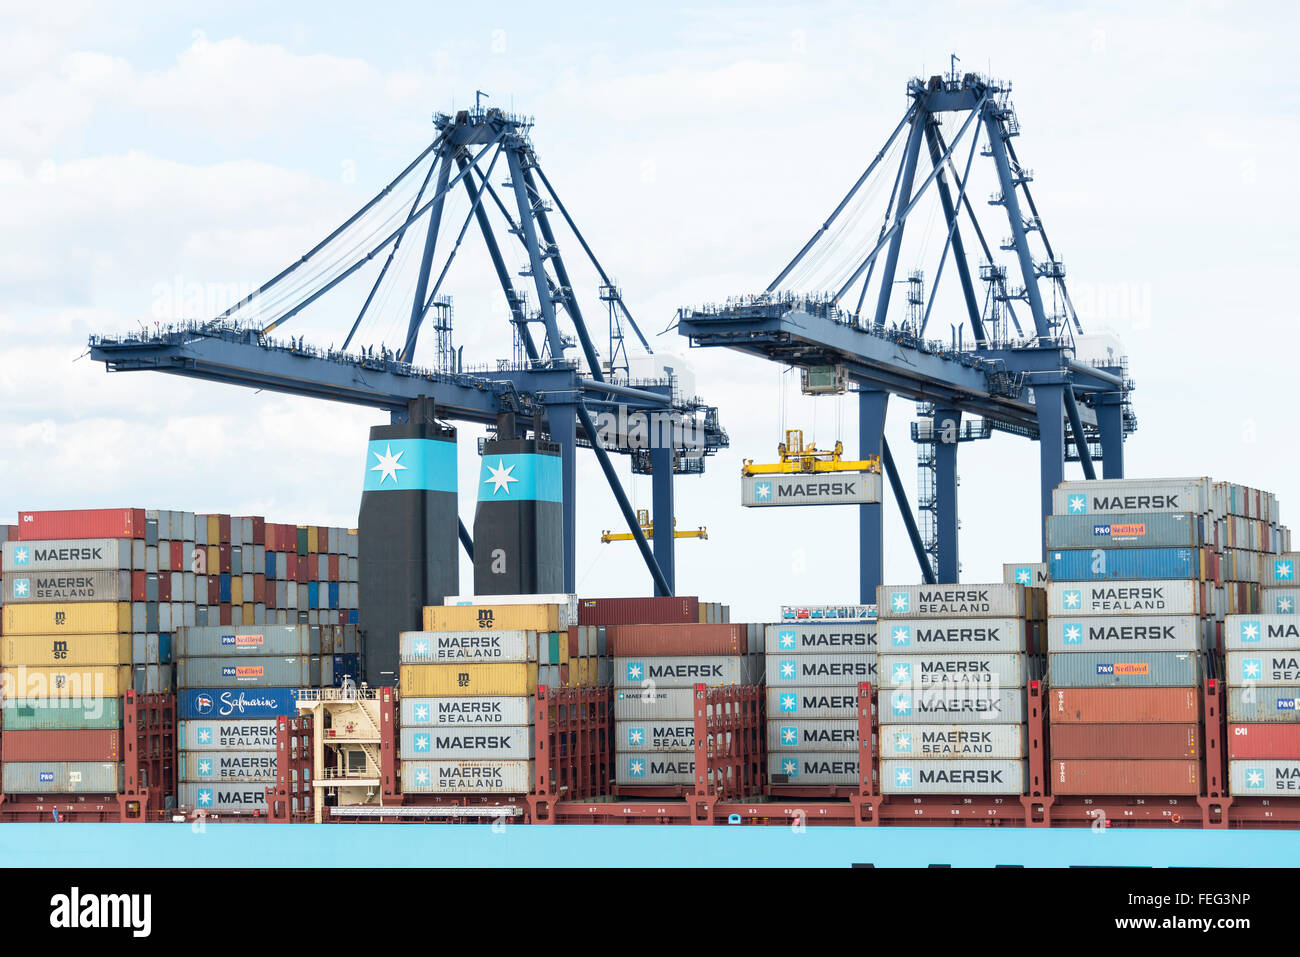 Maersk Line container ship at Container Port of Felixstowe, Essex, England, United Kingdom - Stock Image